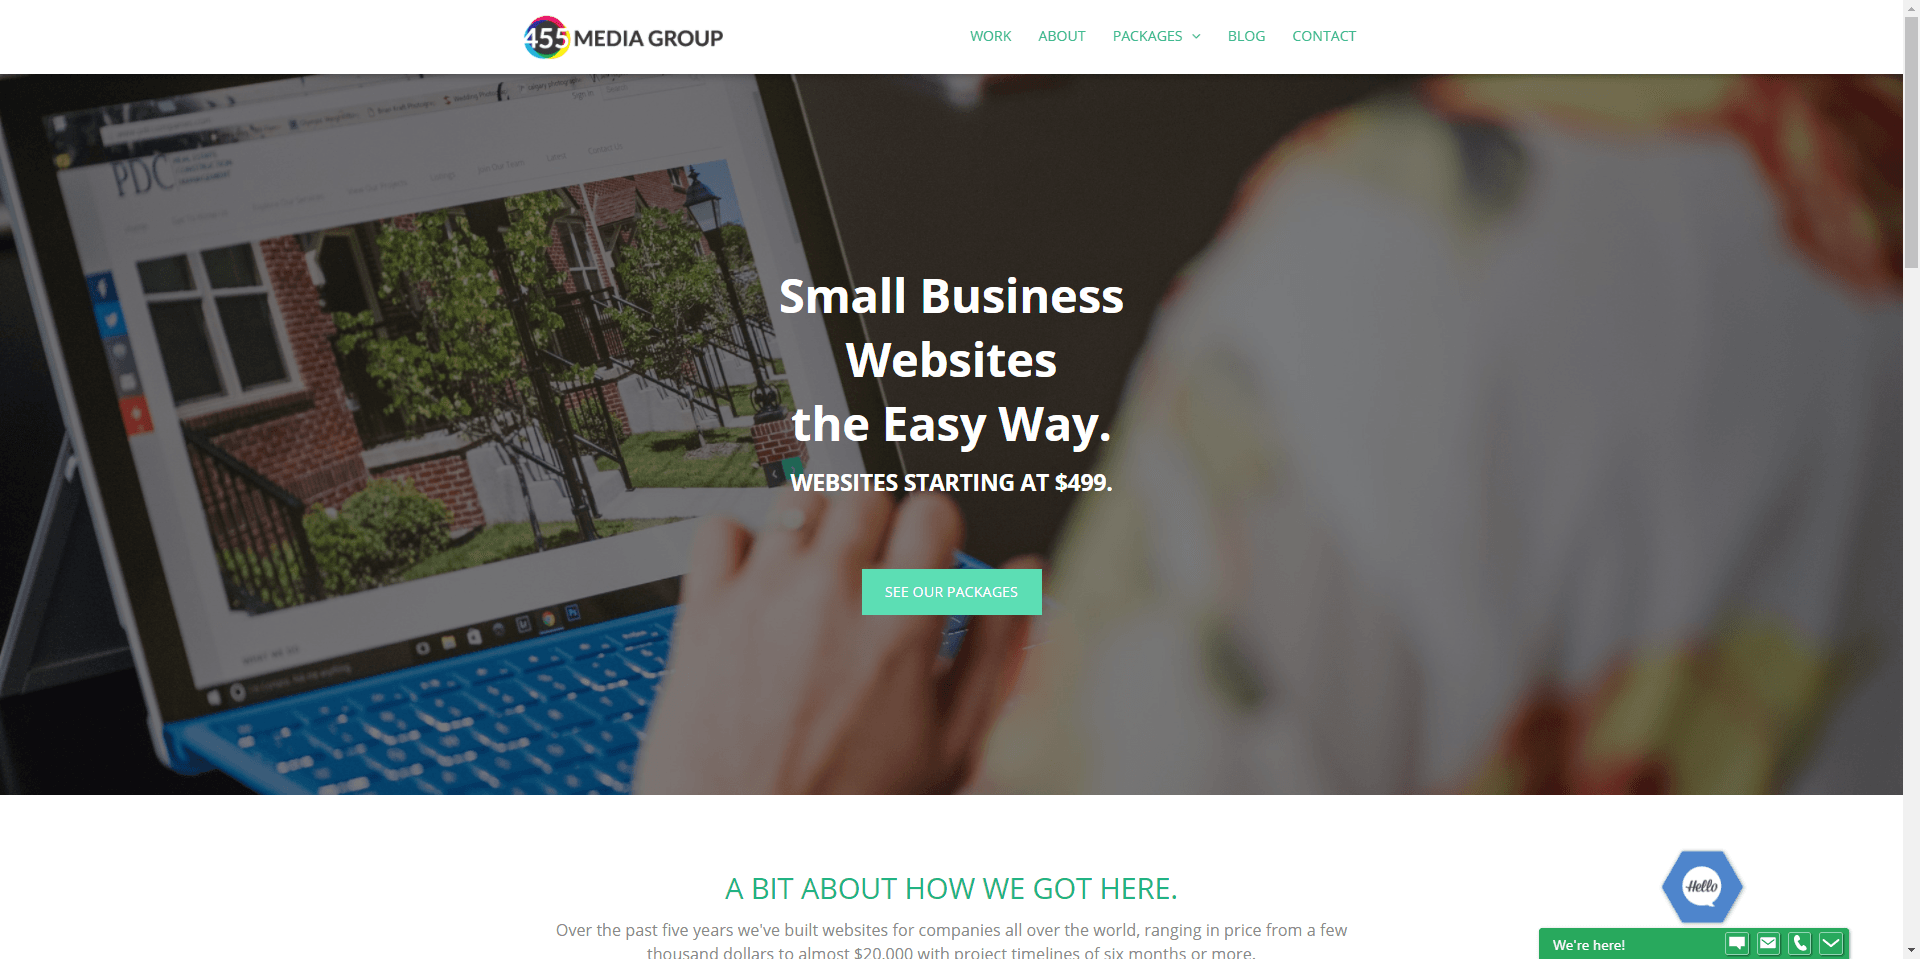 Small Business Website Design Bentonville Ar 455 Media Group